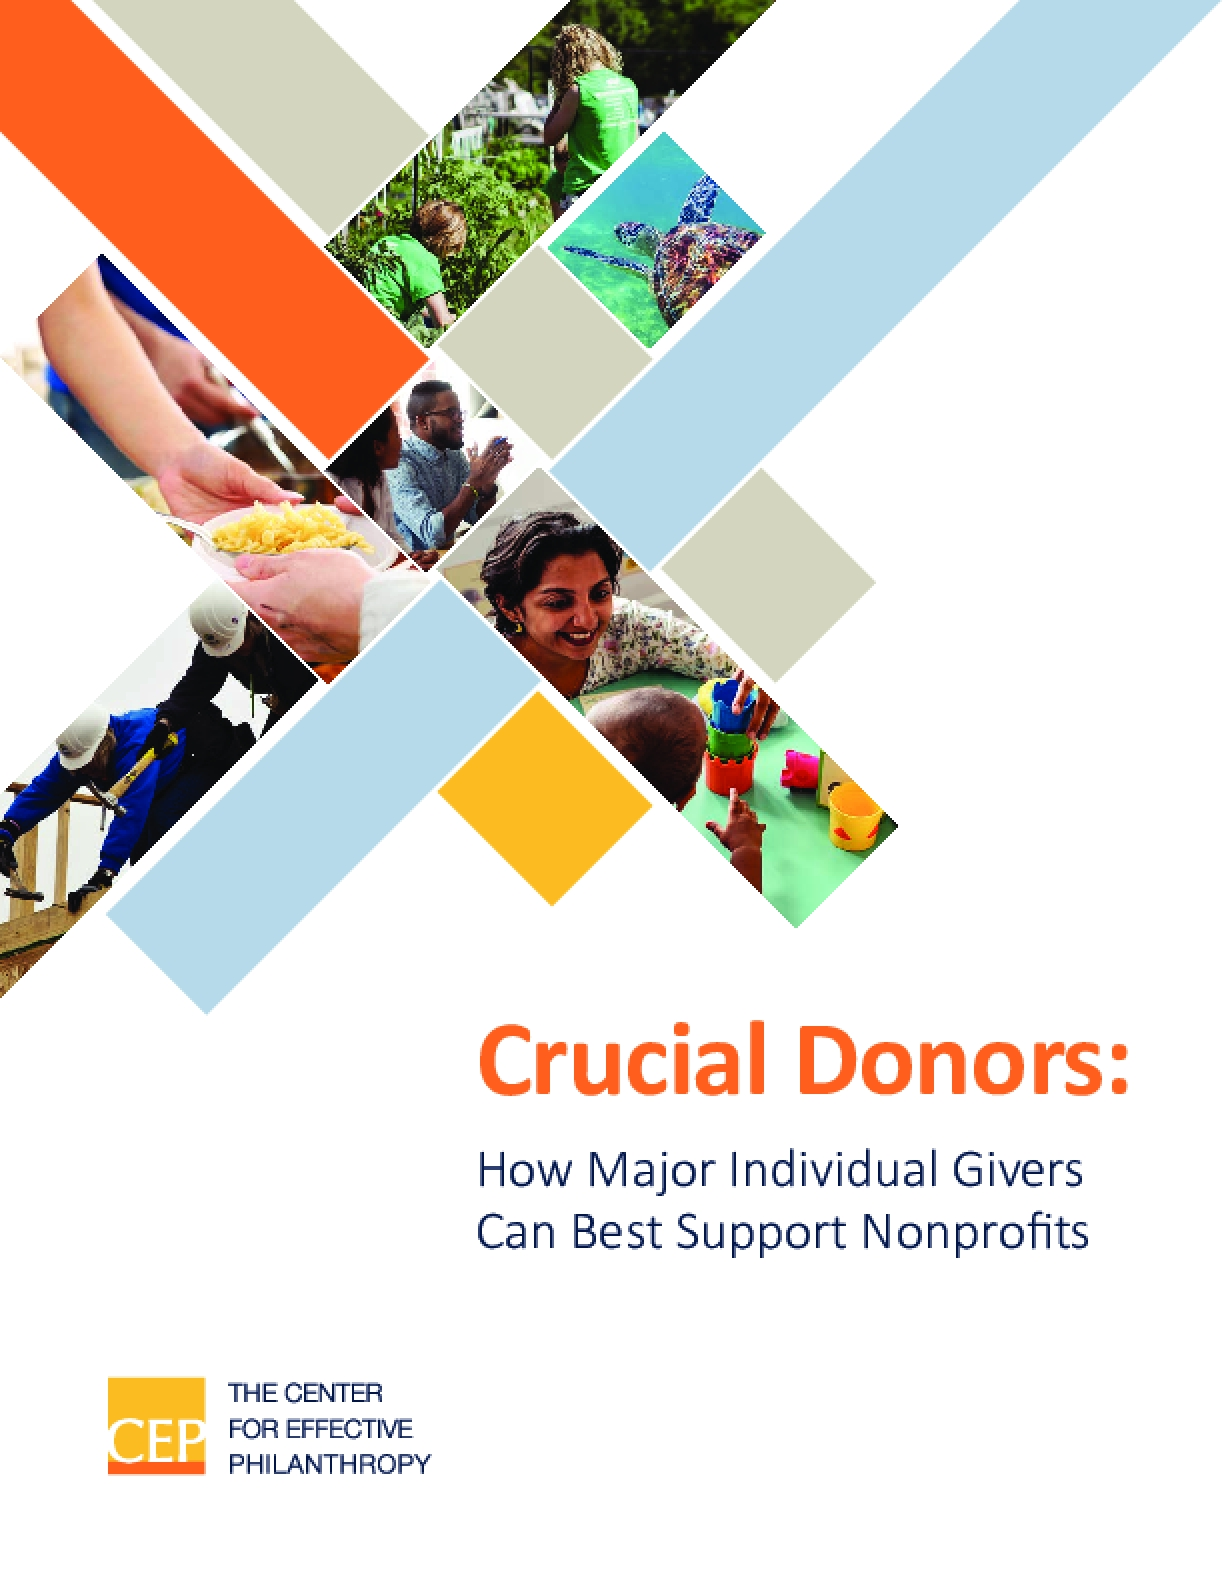 Crucial Donors: How Major Individual Givers Can Best Support Nonprofits